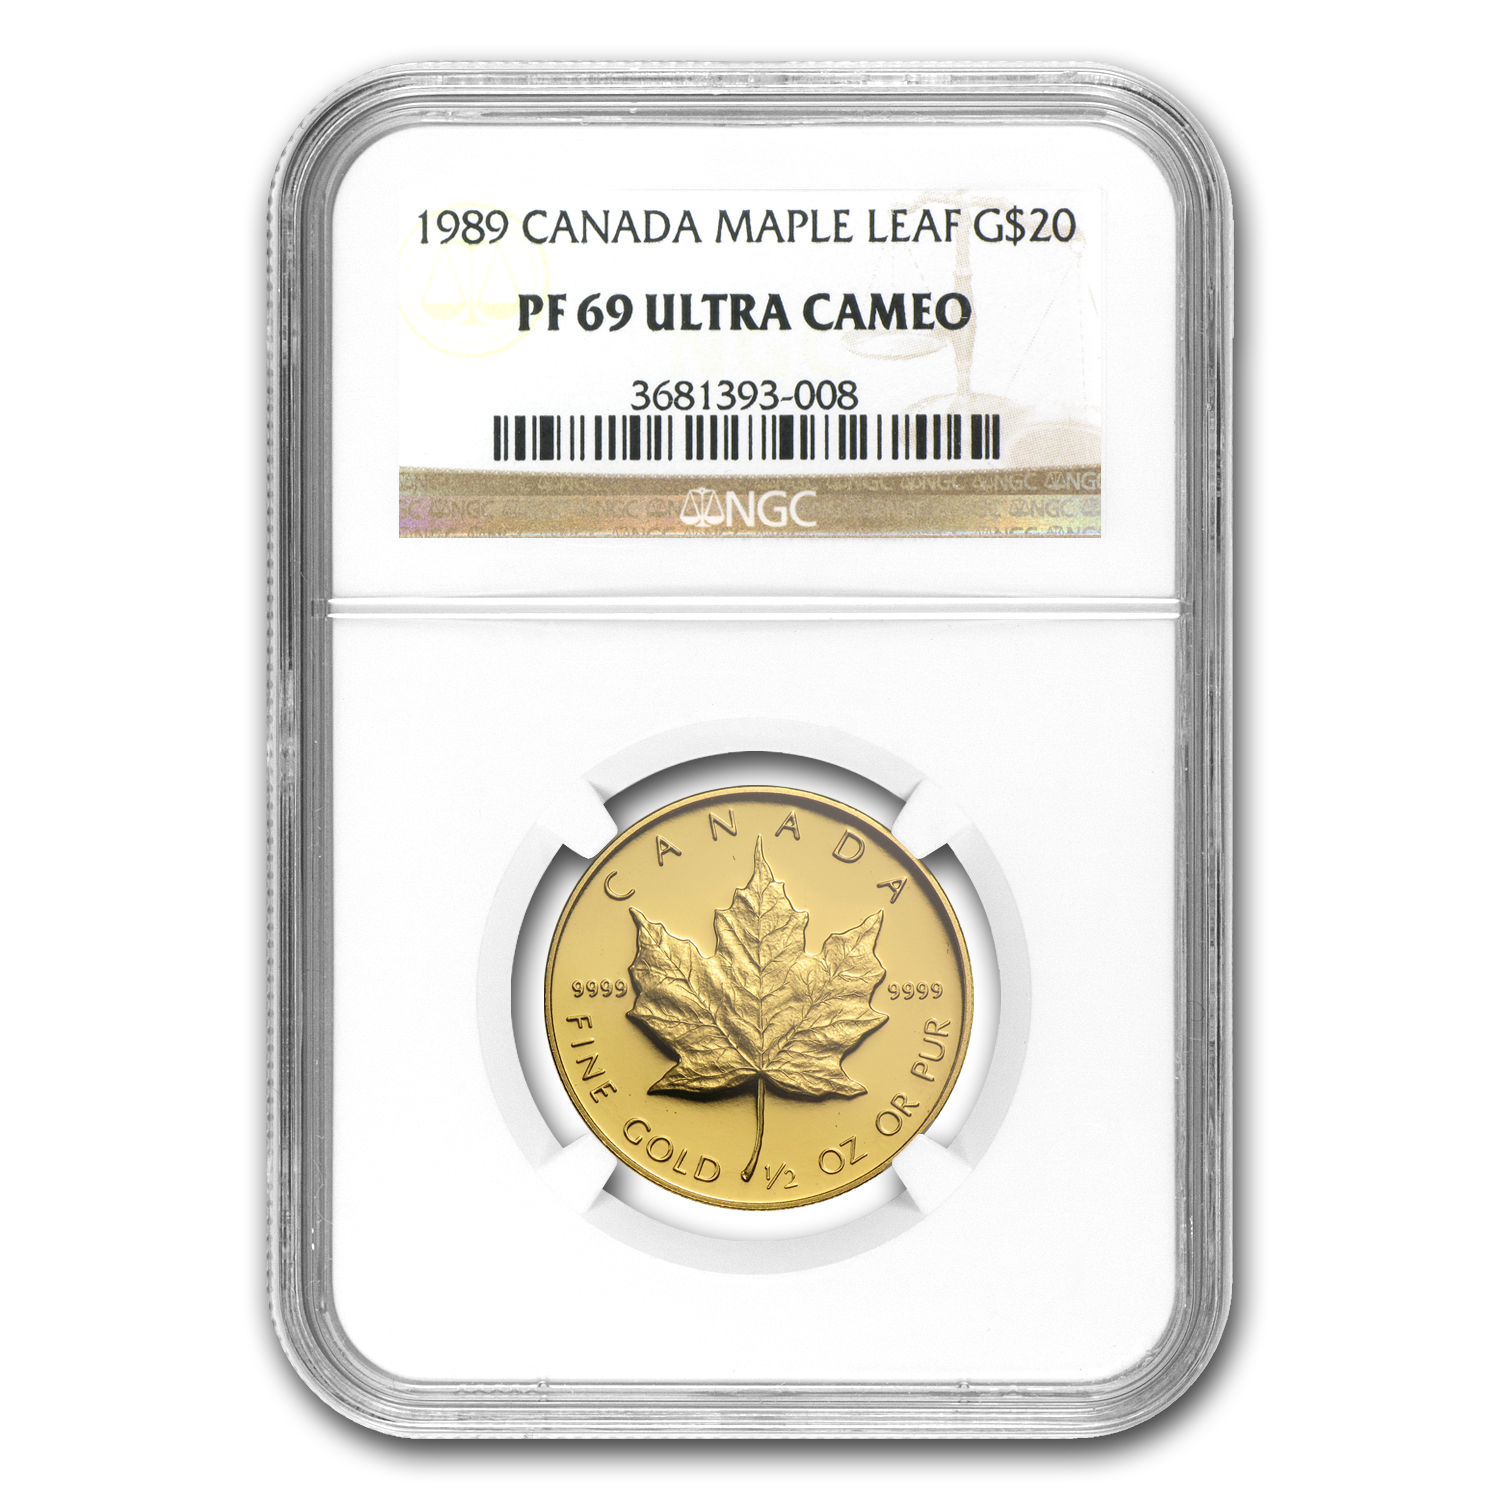 1989 Canada 4-Coin Gold Maple Leaf Commem Proof Set PF-69 NGC